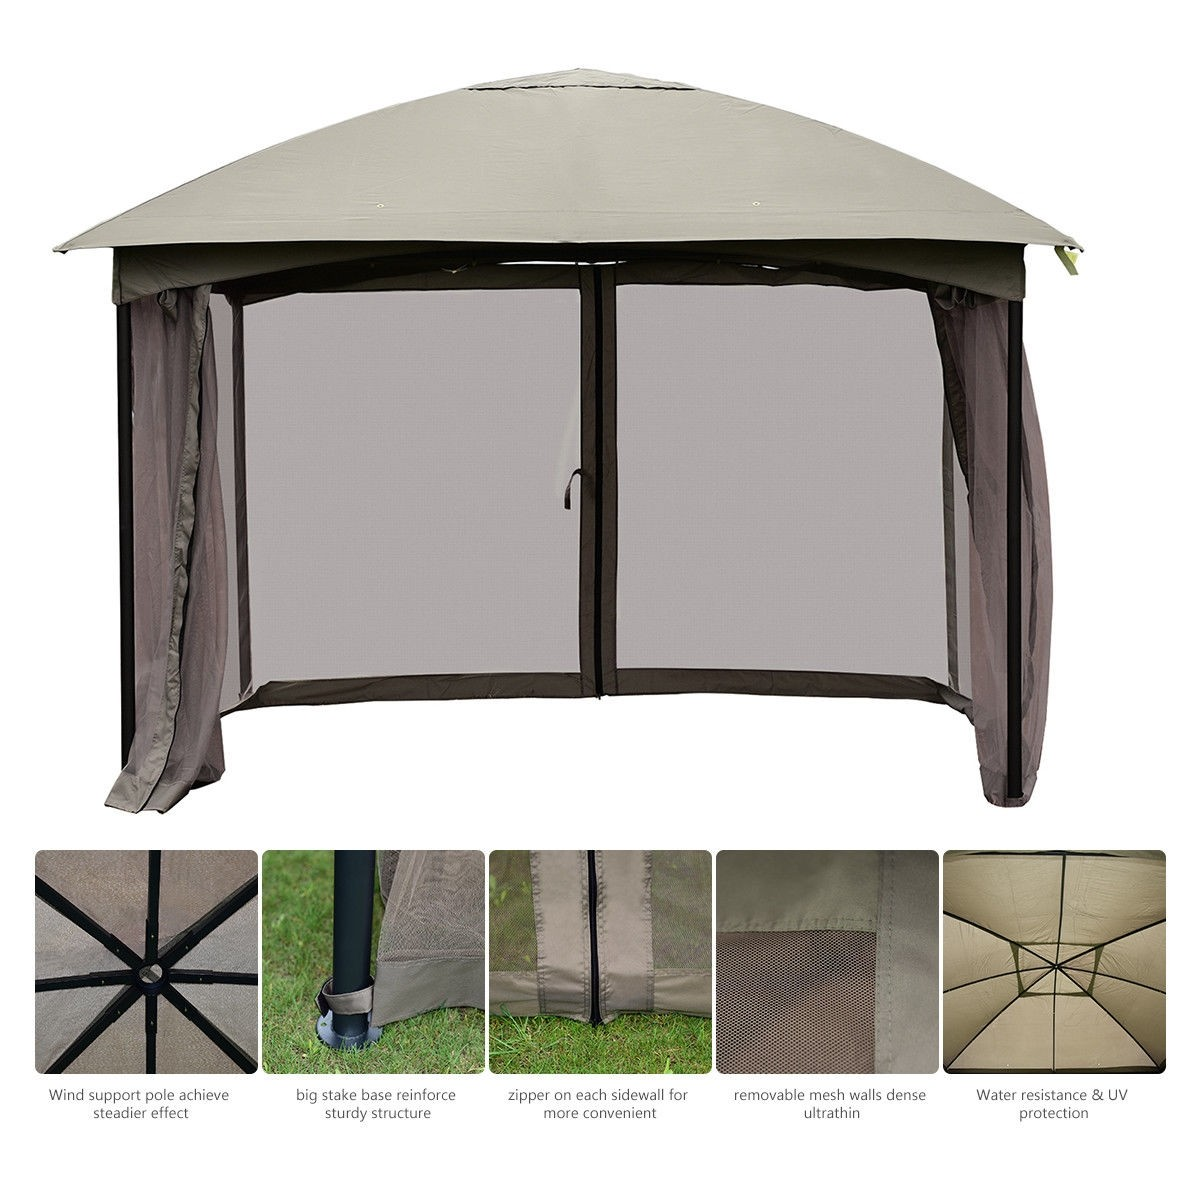 Genial 11.5FT Patio Gazebo Canopy Tent Wedding Party Awning Mosquito Netting